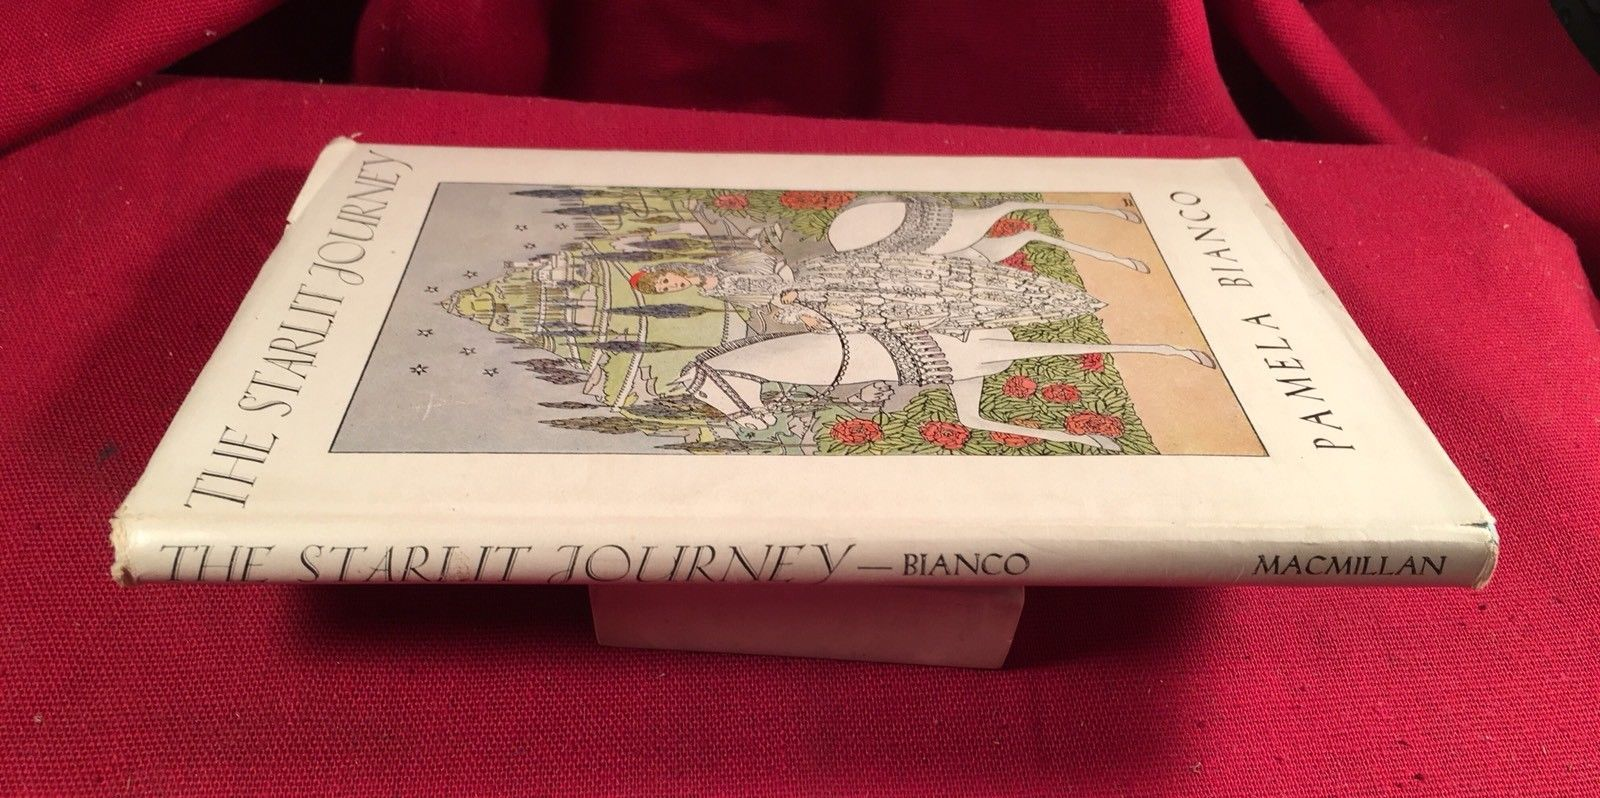 The Starlit Journey by Pamela Bianco 1st Edition in dust jacket